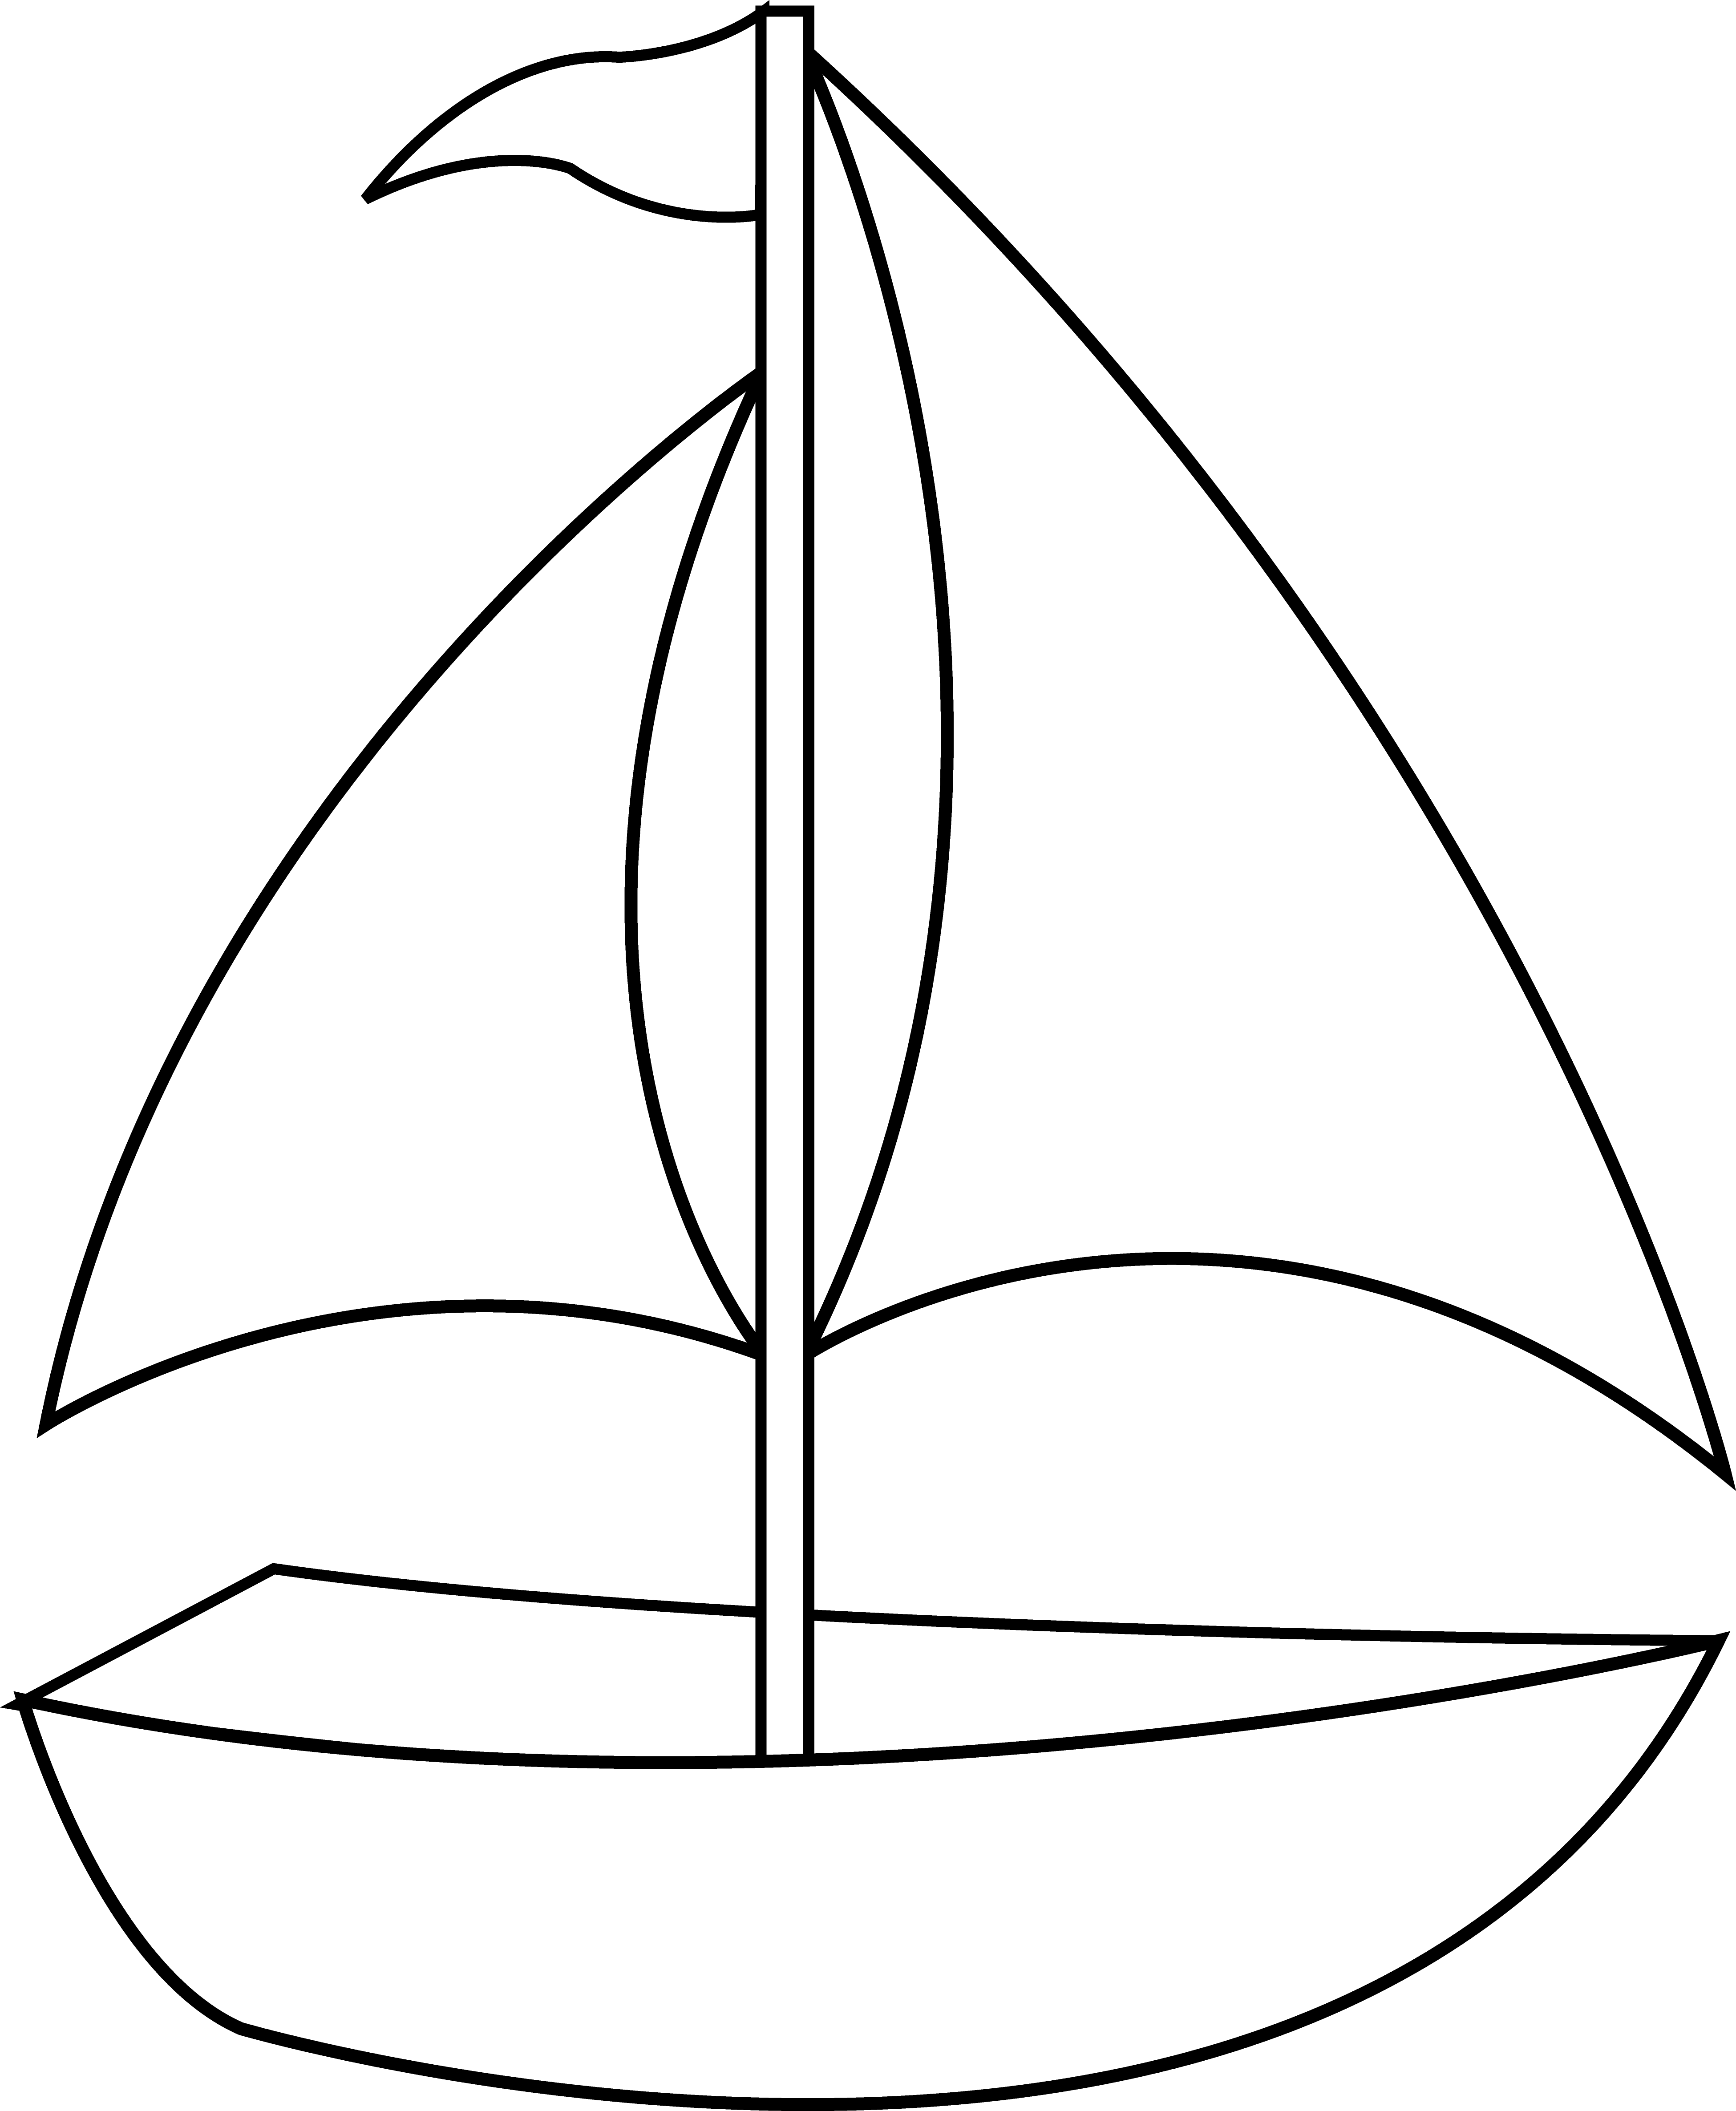 image library library Yacht clipart toy sailboat. Colorable line art free